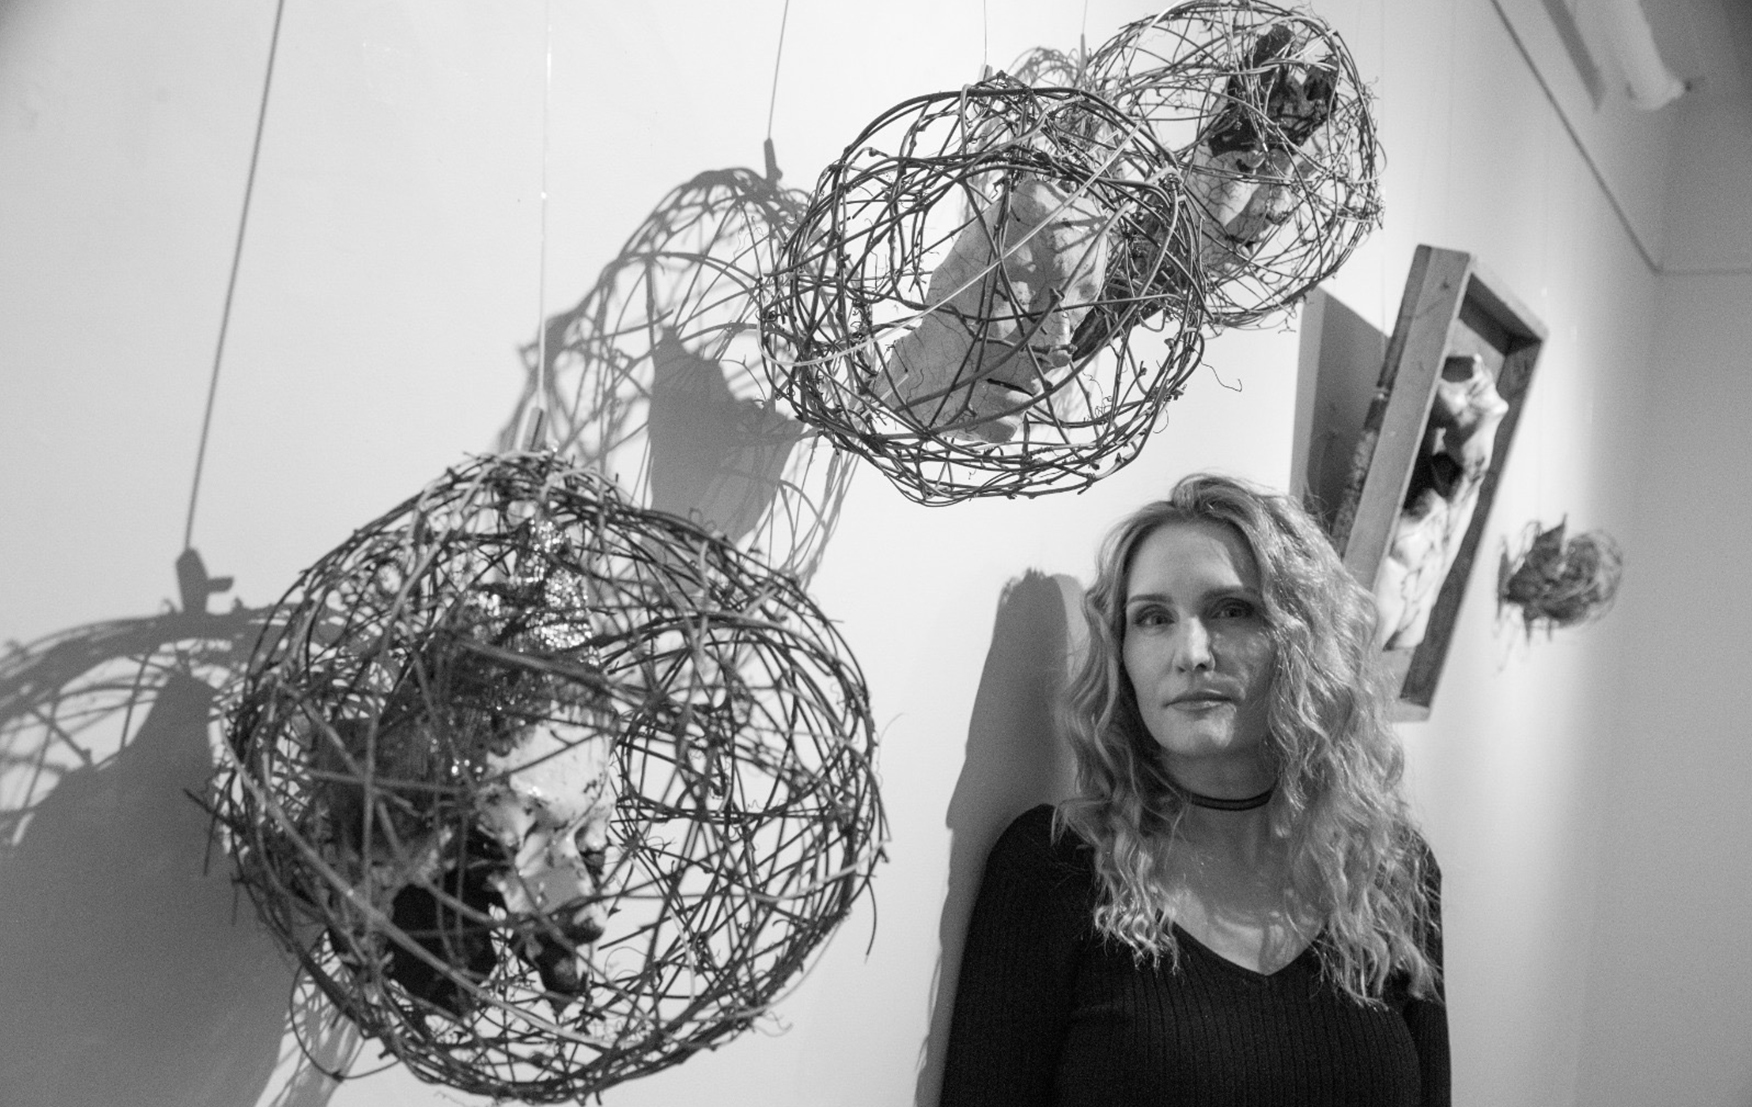 Trish Classe Gianakis, posed in front of her work.